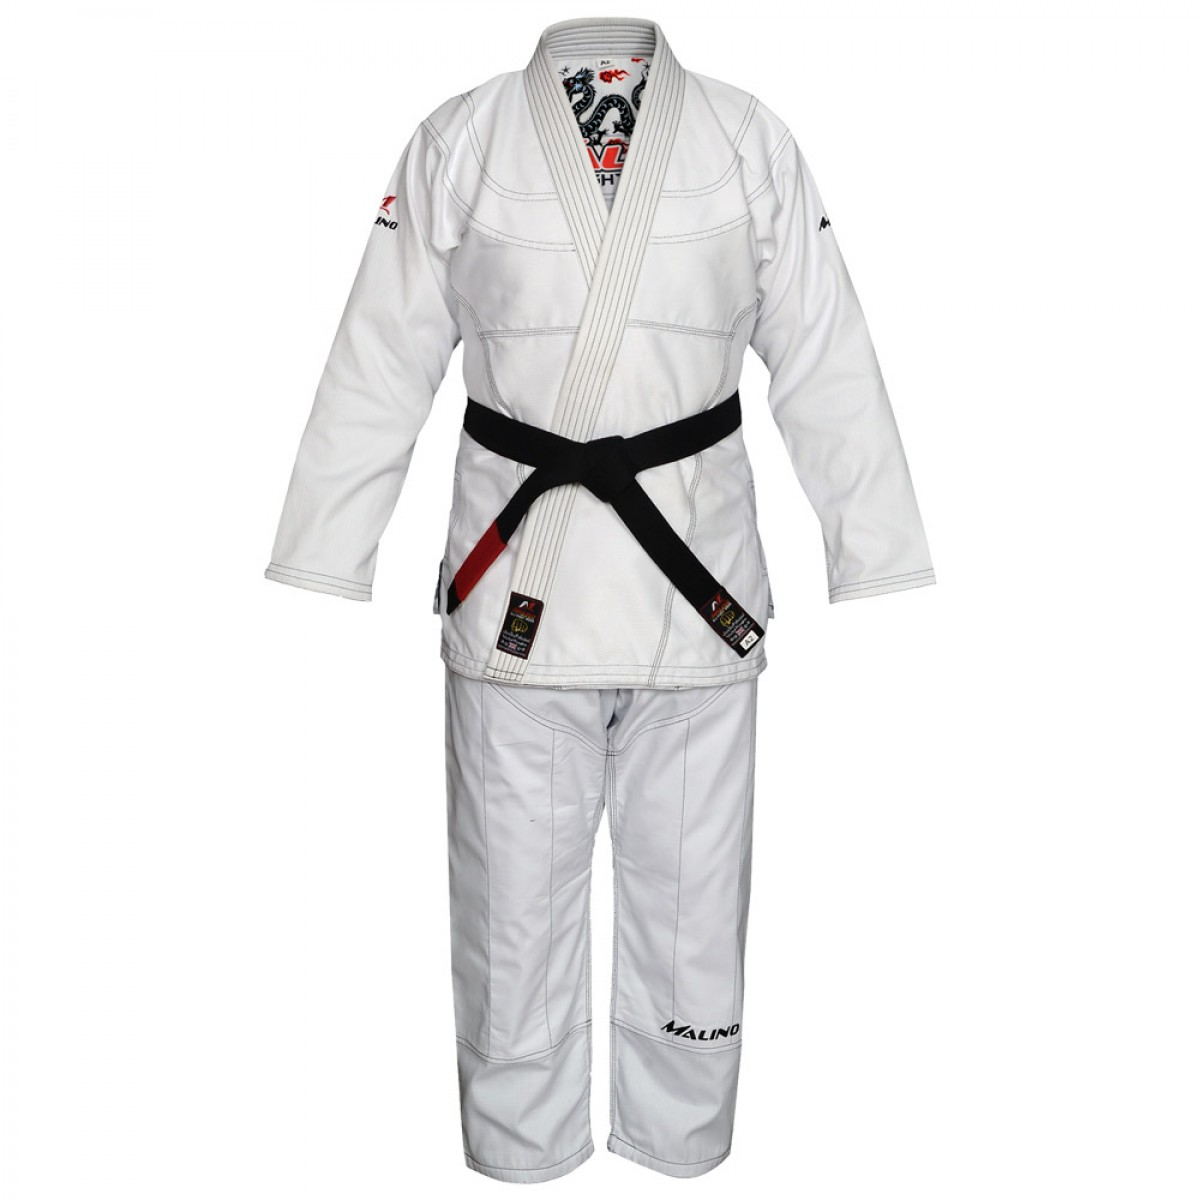 Malino BJJ Gi Bull Dragon White Pearl Weave Cotton 350Gsm